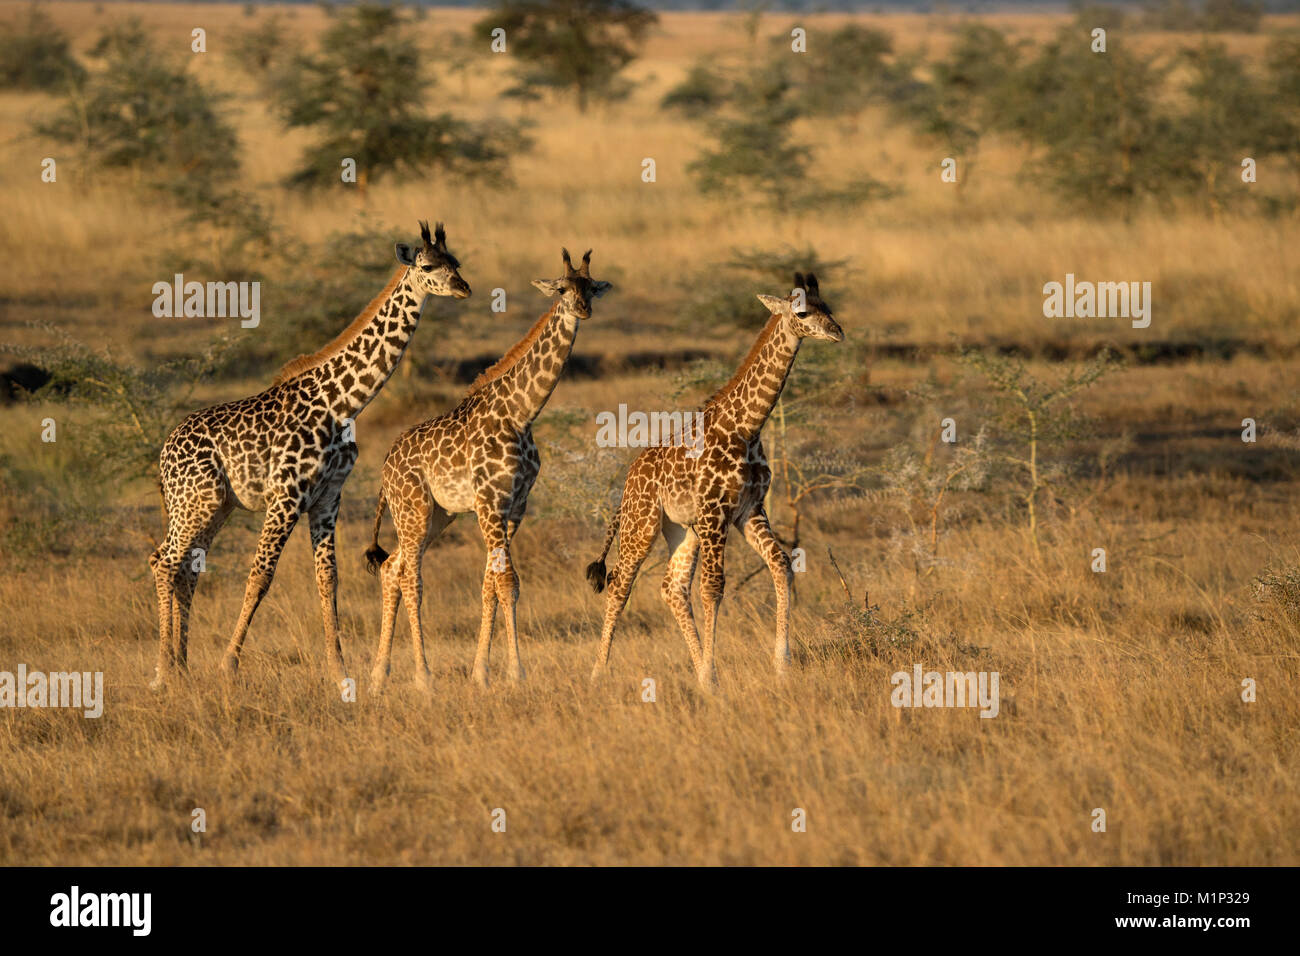 Young giraffes (Giraffa camelopardalis), Serengeti National Park, Tanzania, East Africa, Africa - Stock Image